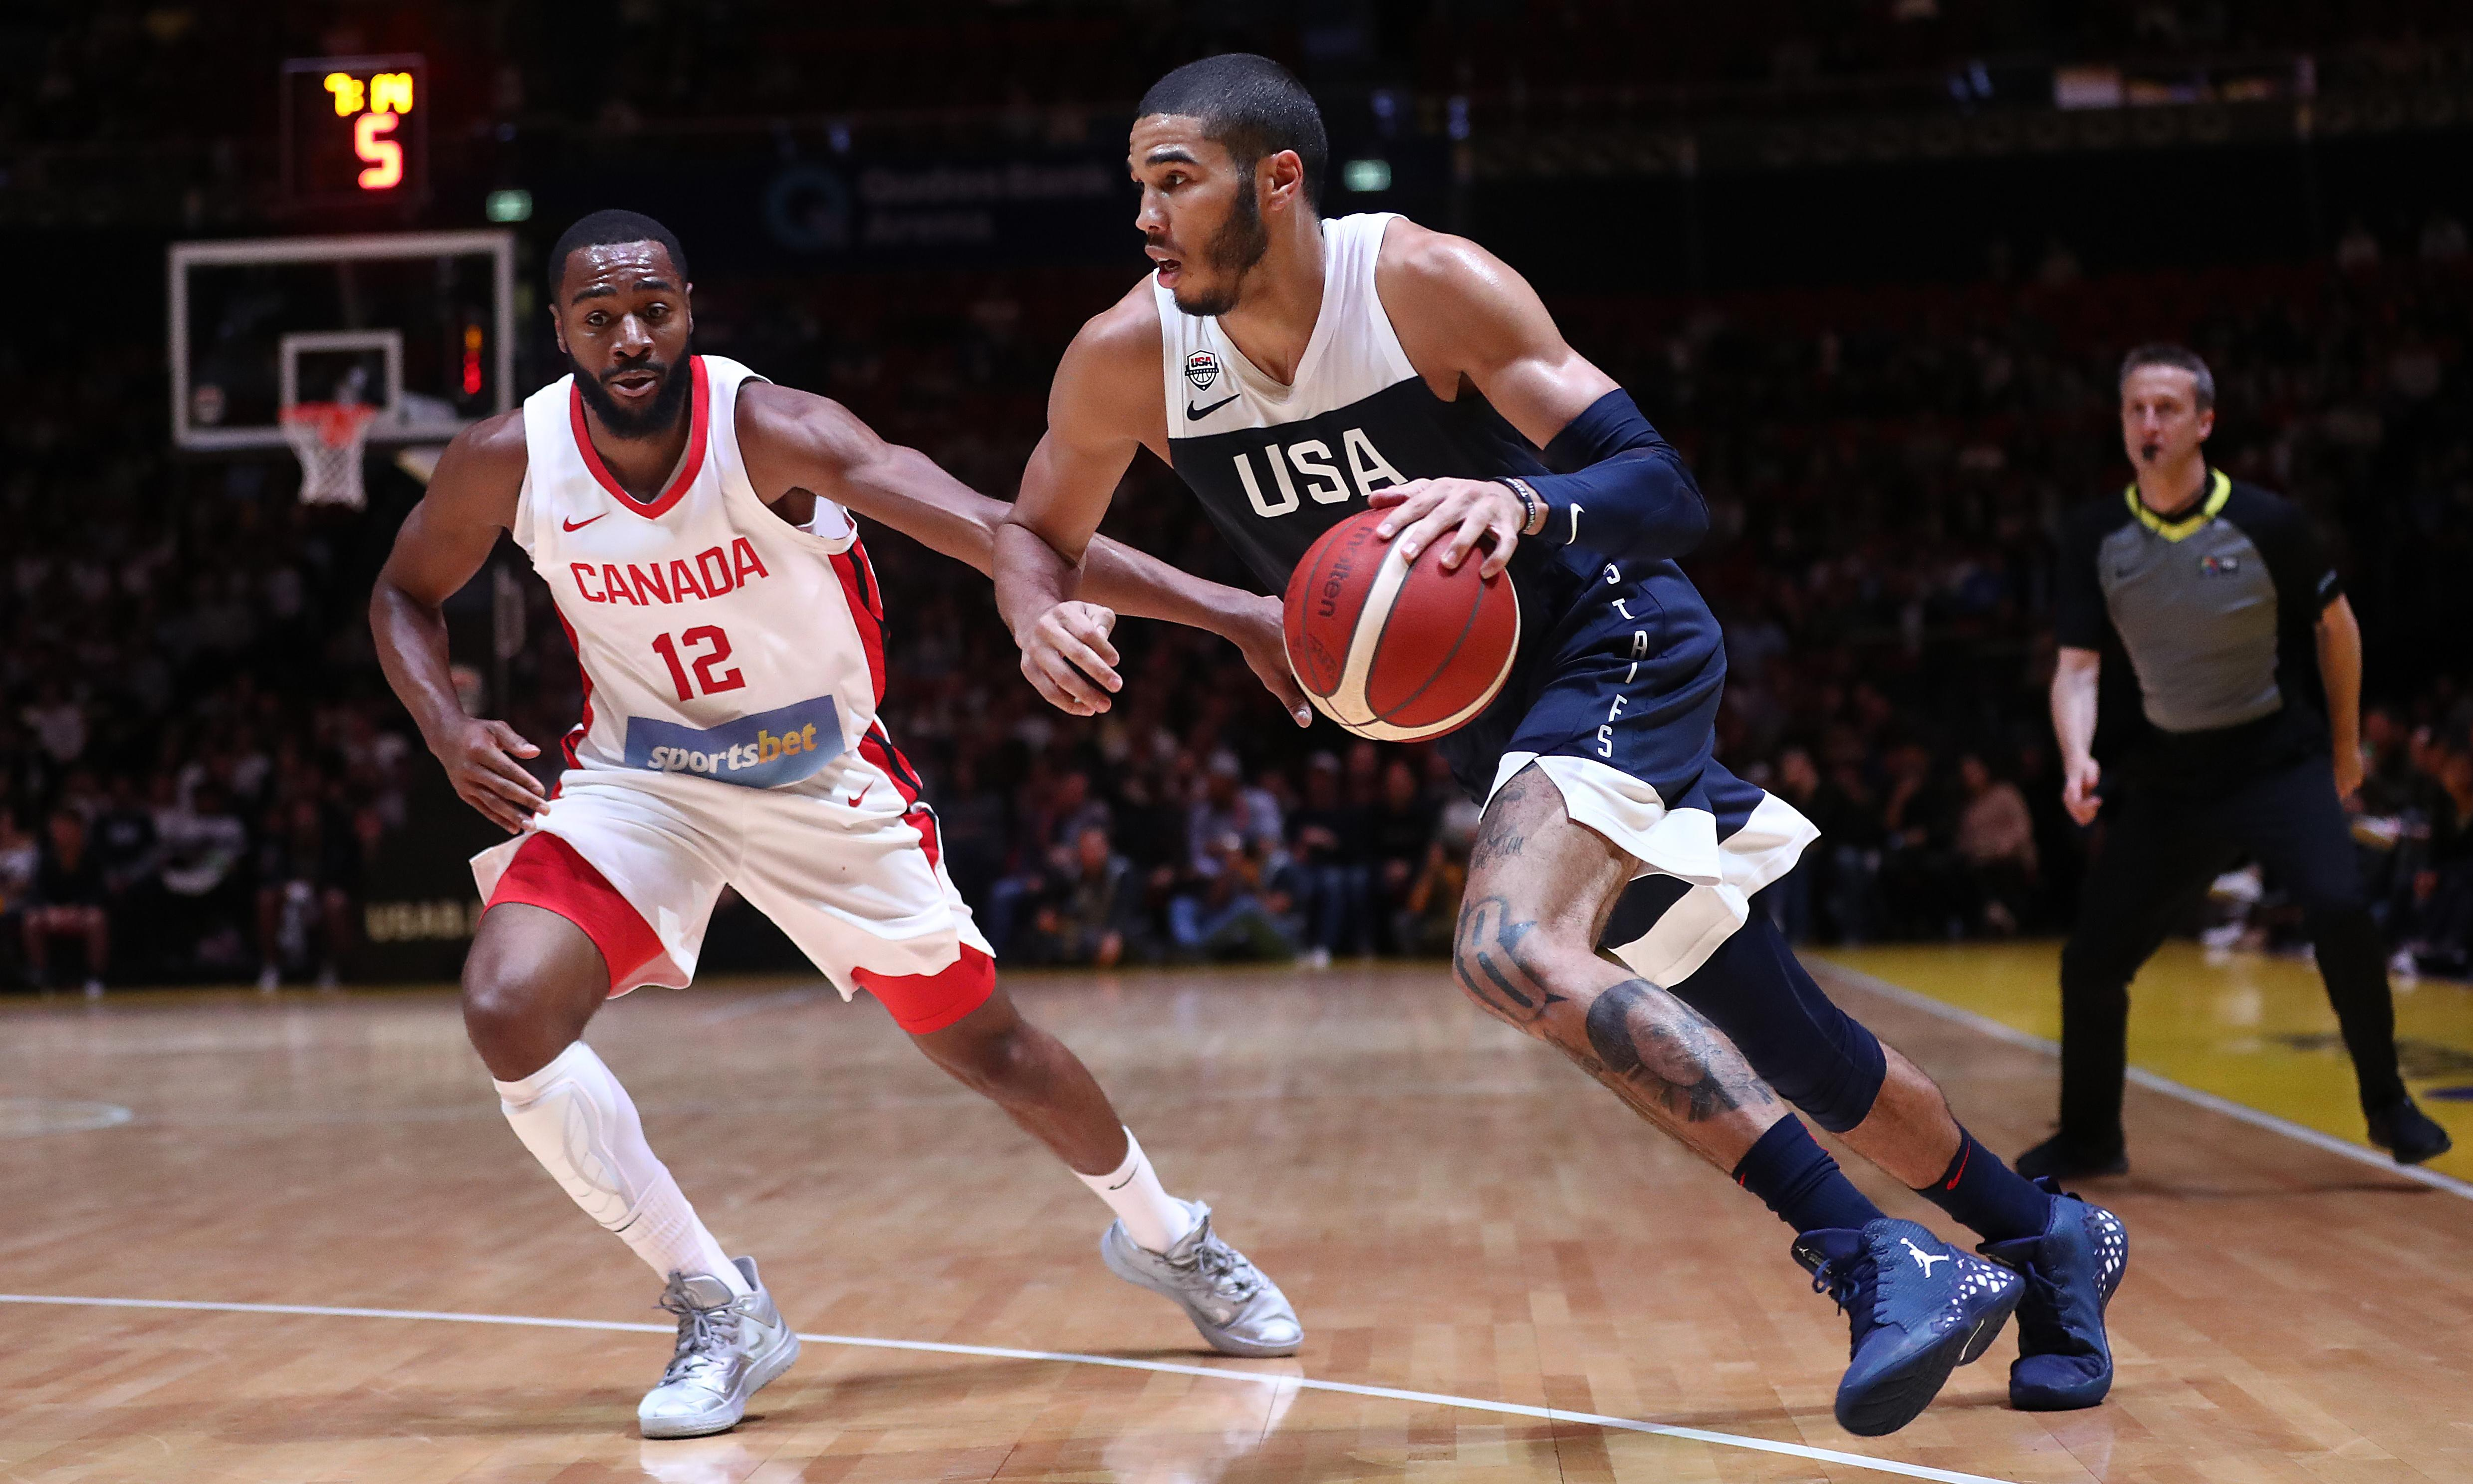 USA rebound from rare loss to defeat Canada in final Fiba World Cup tune-up